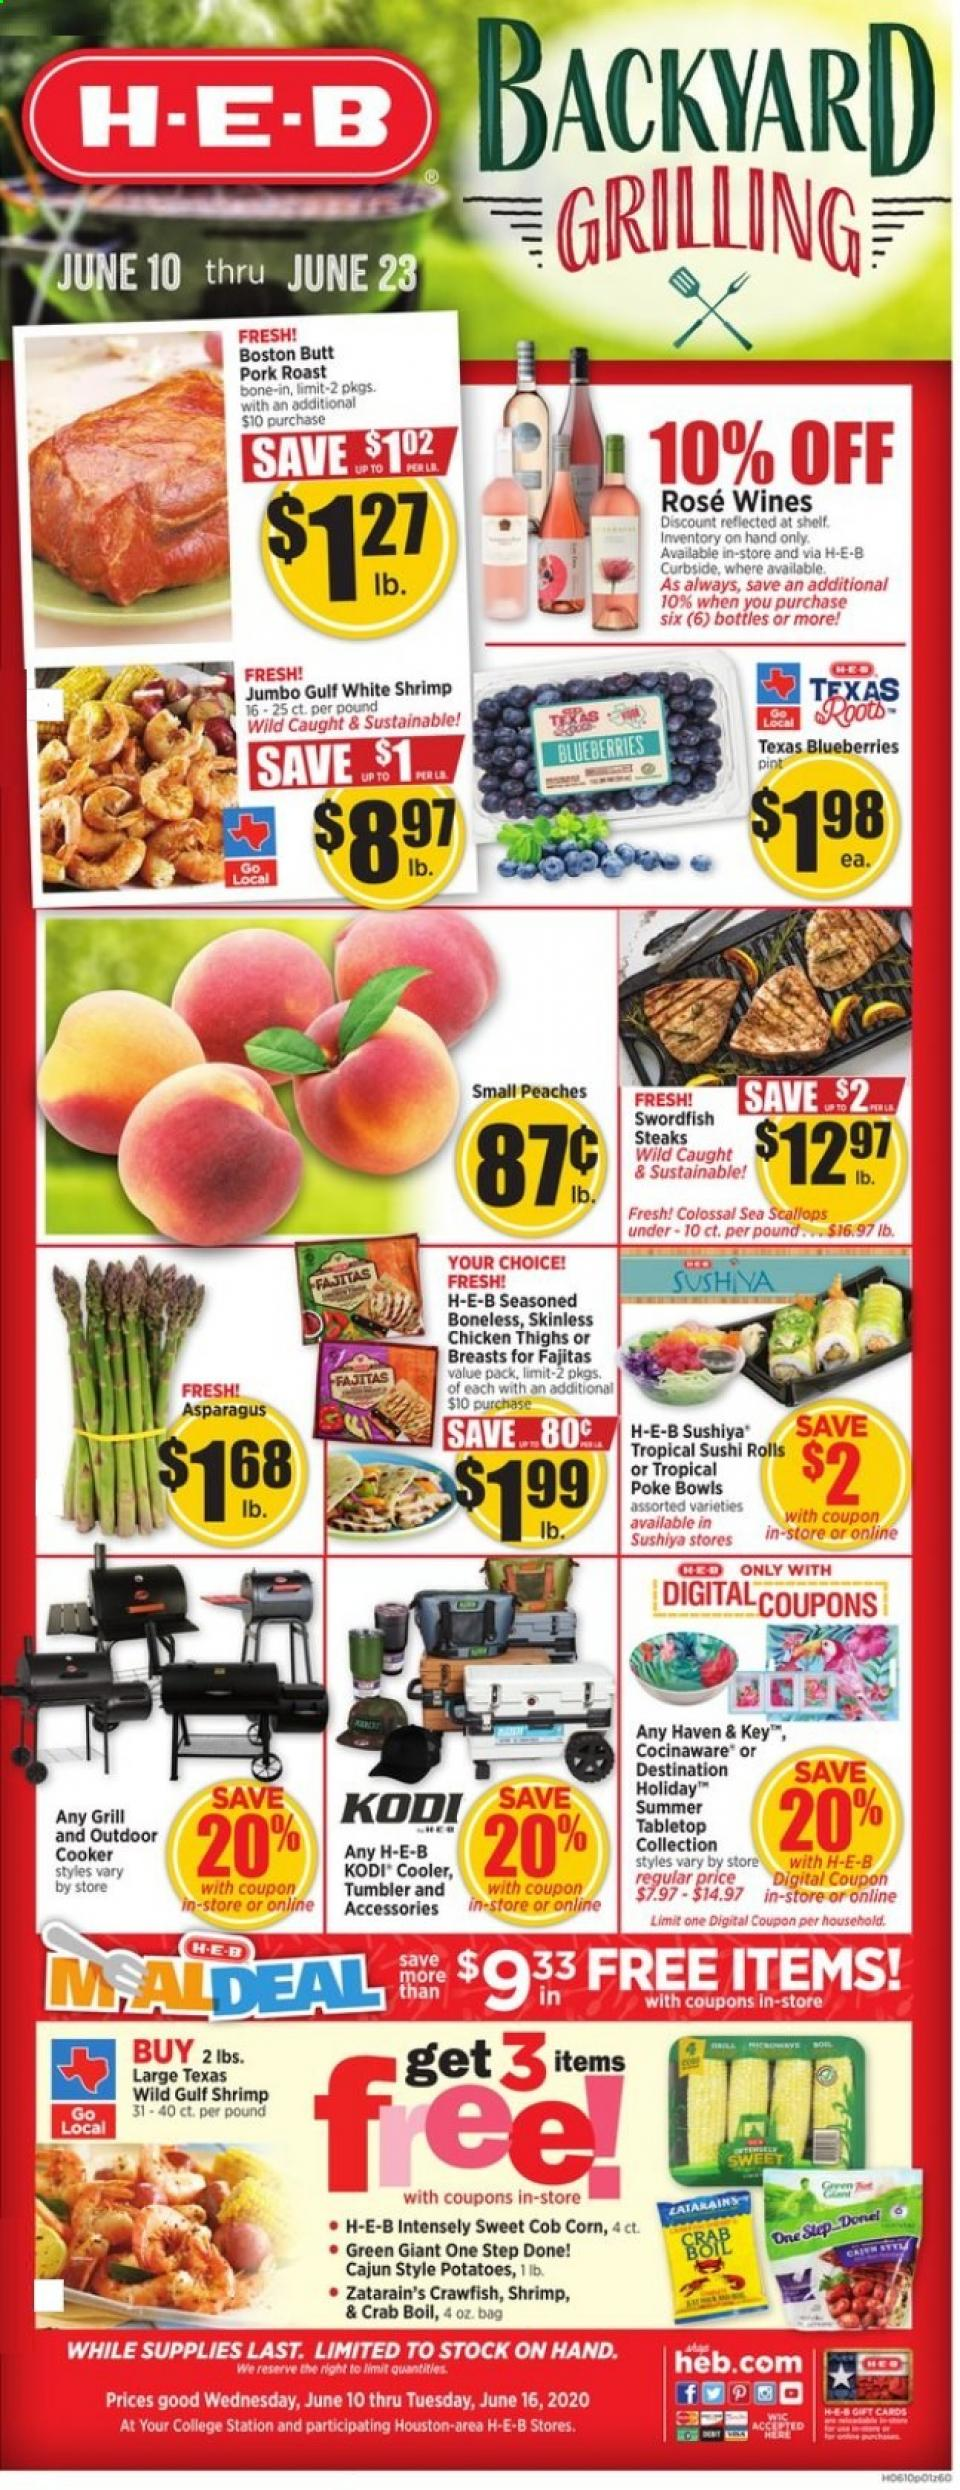 heb backyard grilling june weekly ad valid from jun 10 16 2020